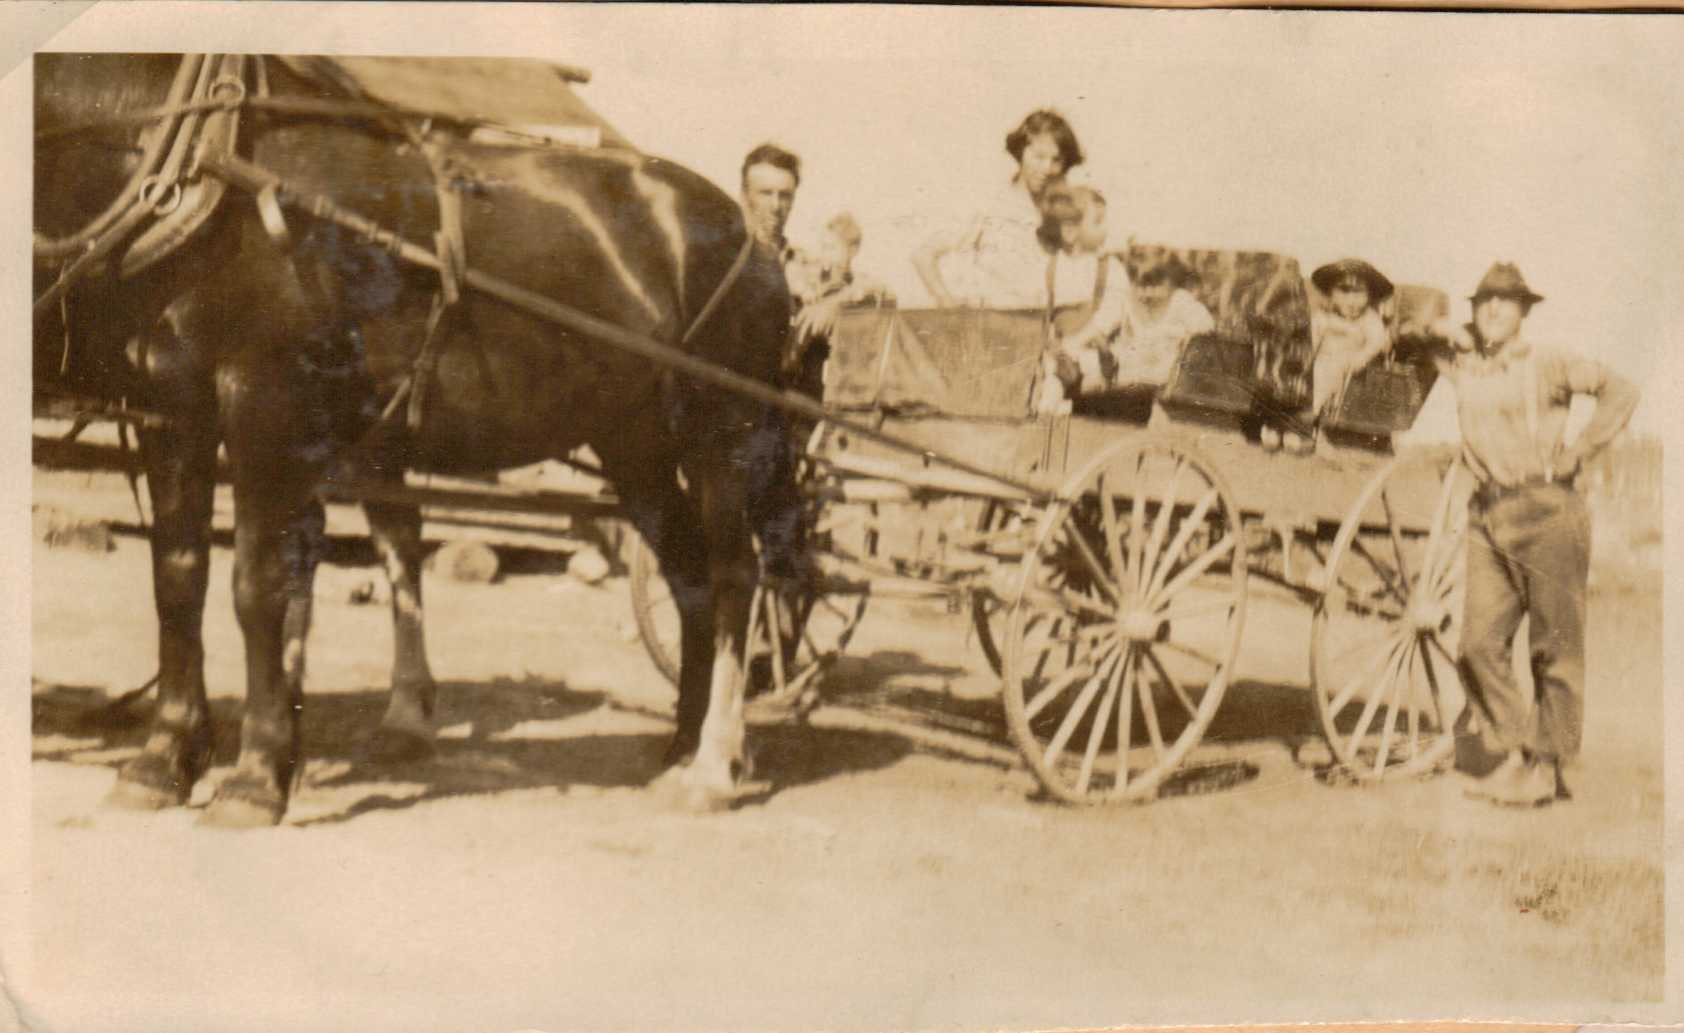 Hubert and Doris Brooks in Horse Drawn Wagon with Family Members